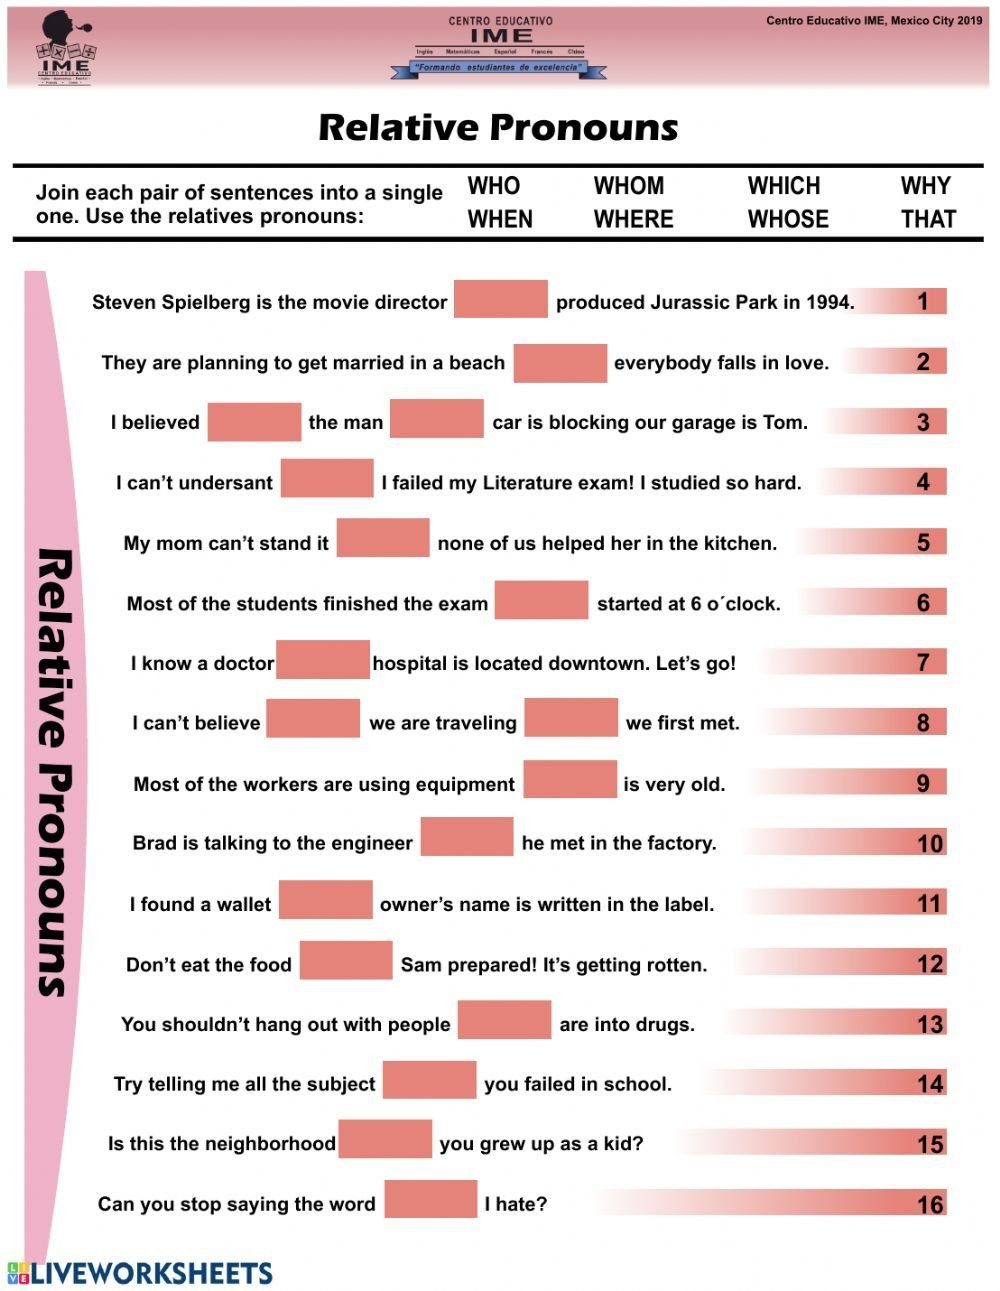 Relative Pronouns 4th Grade Worksheets Relative Pronouns Online Worksheet And Pdf In 2020 Pronoun Worksheets Relative Pronouns Kindergarten Worksheets Sight Words